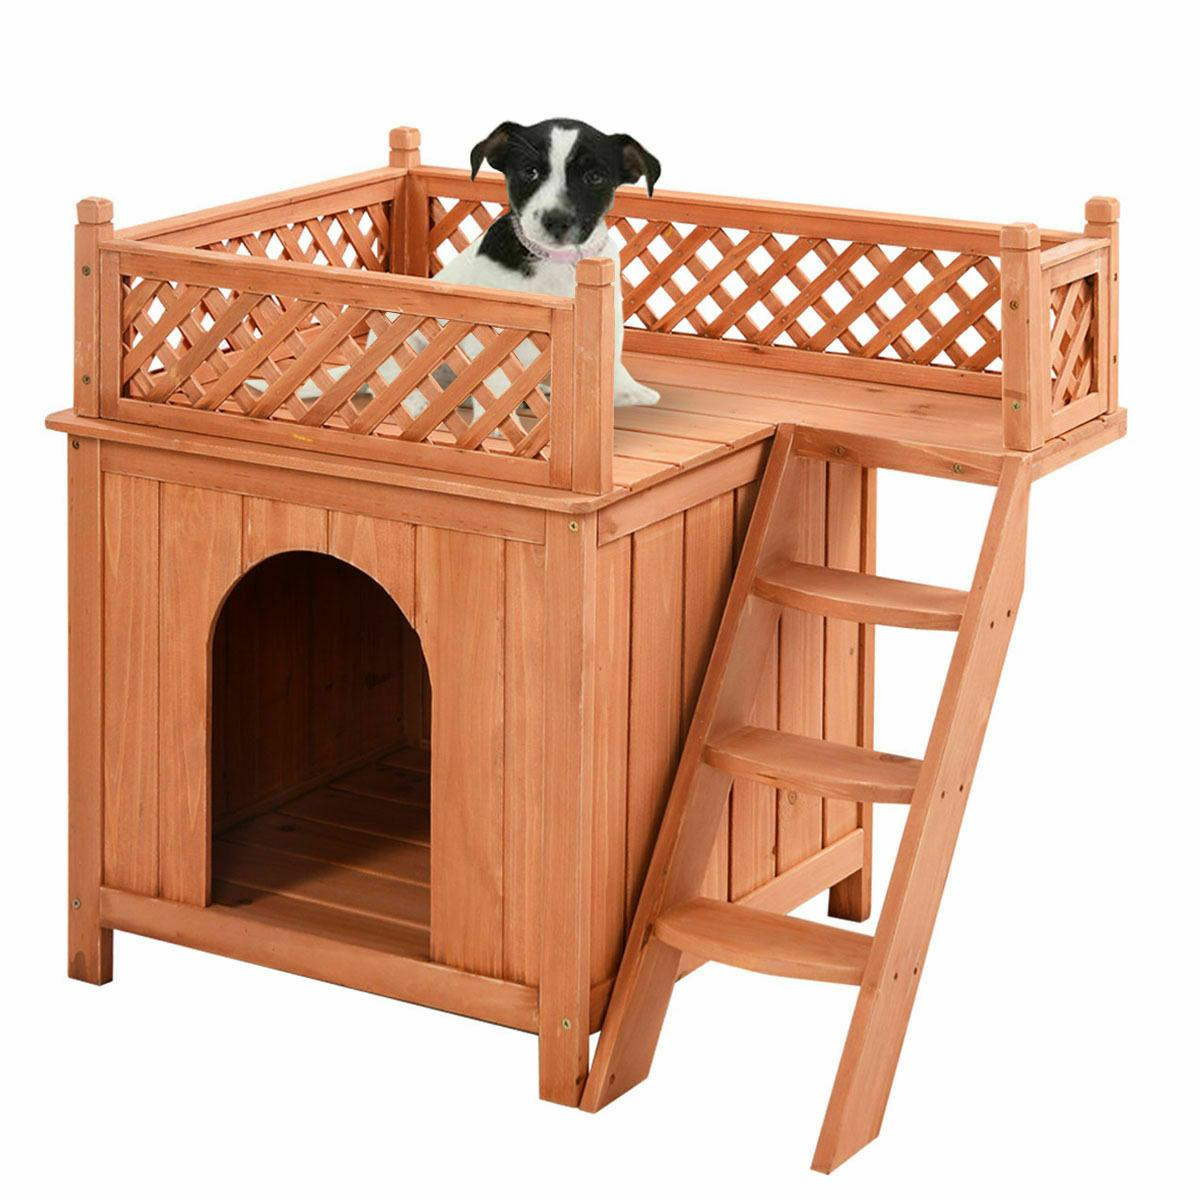 wood pet dog house wooden puppy room